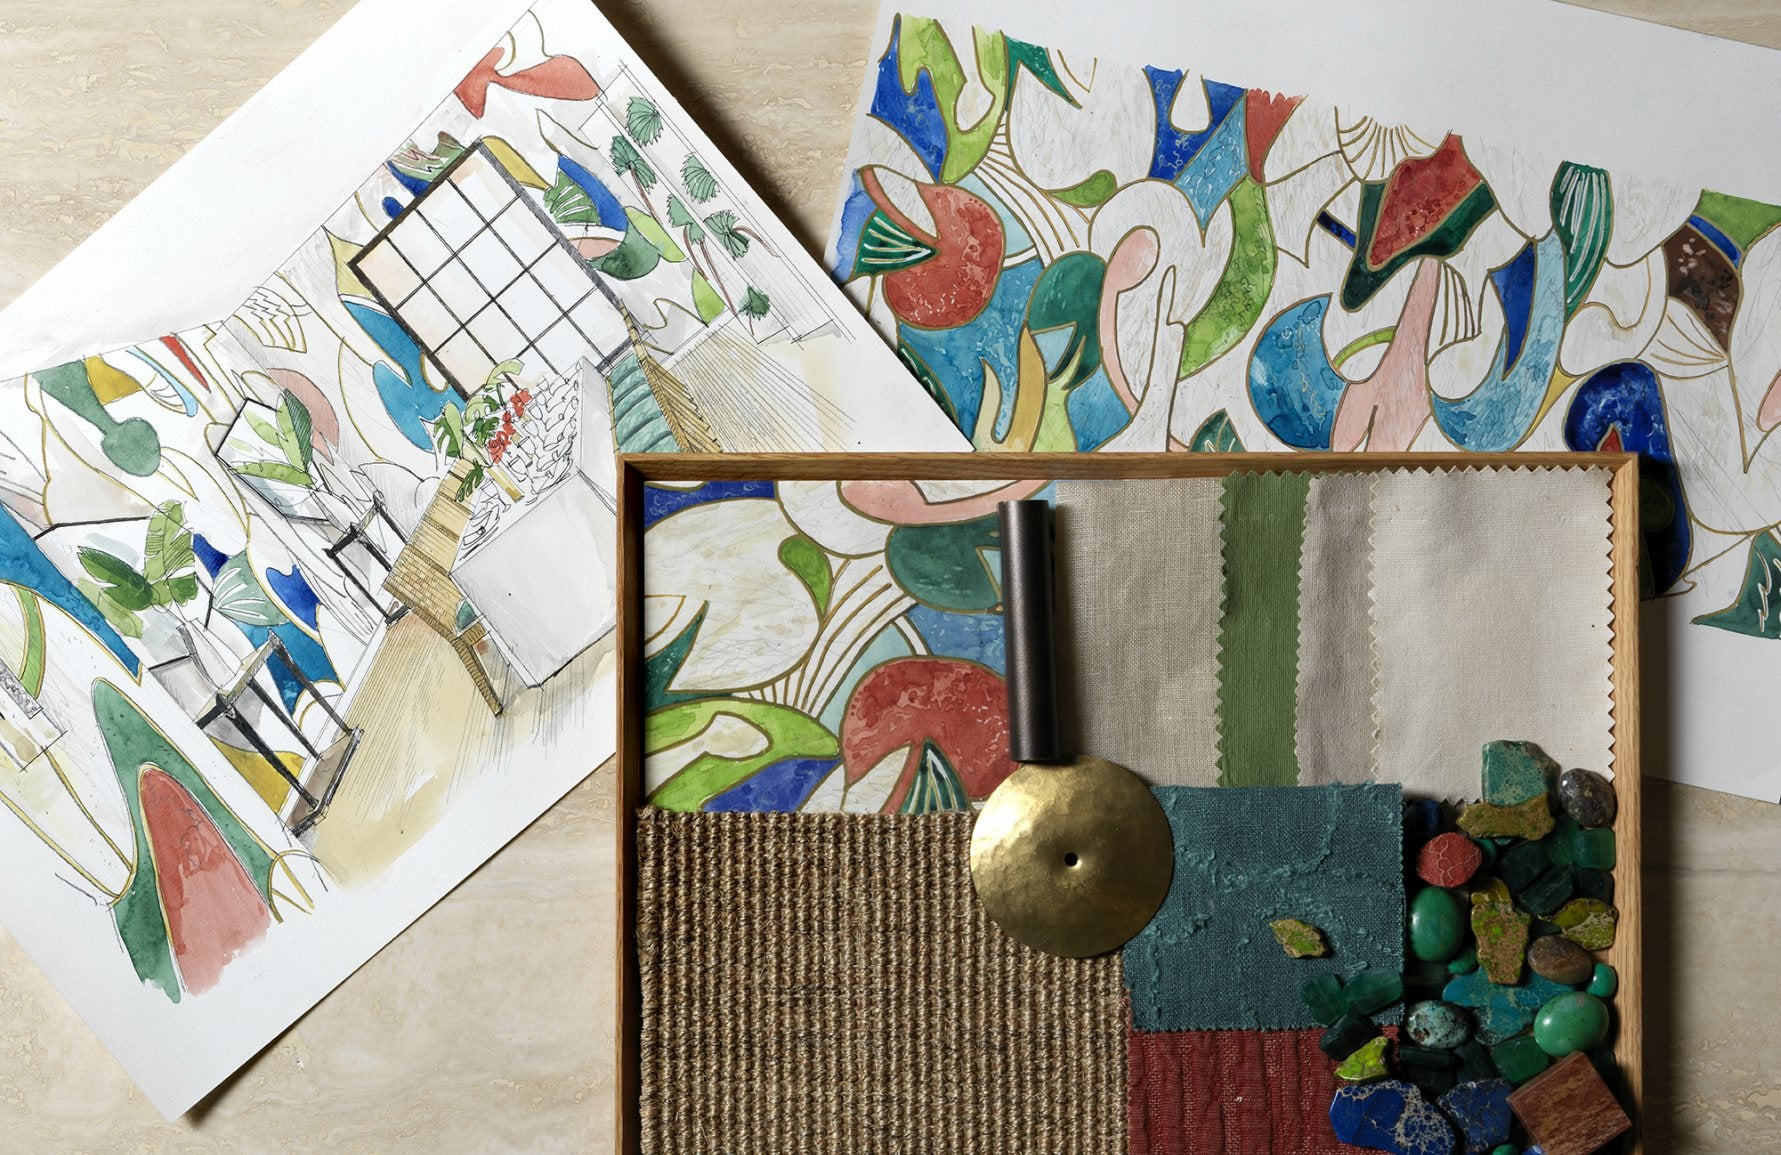 Combining Cultures Through Design   Natalia Miyar   Read more in The Luxurist